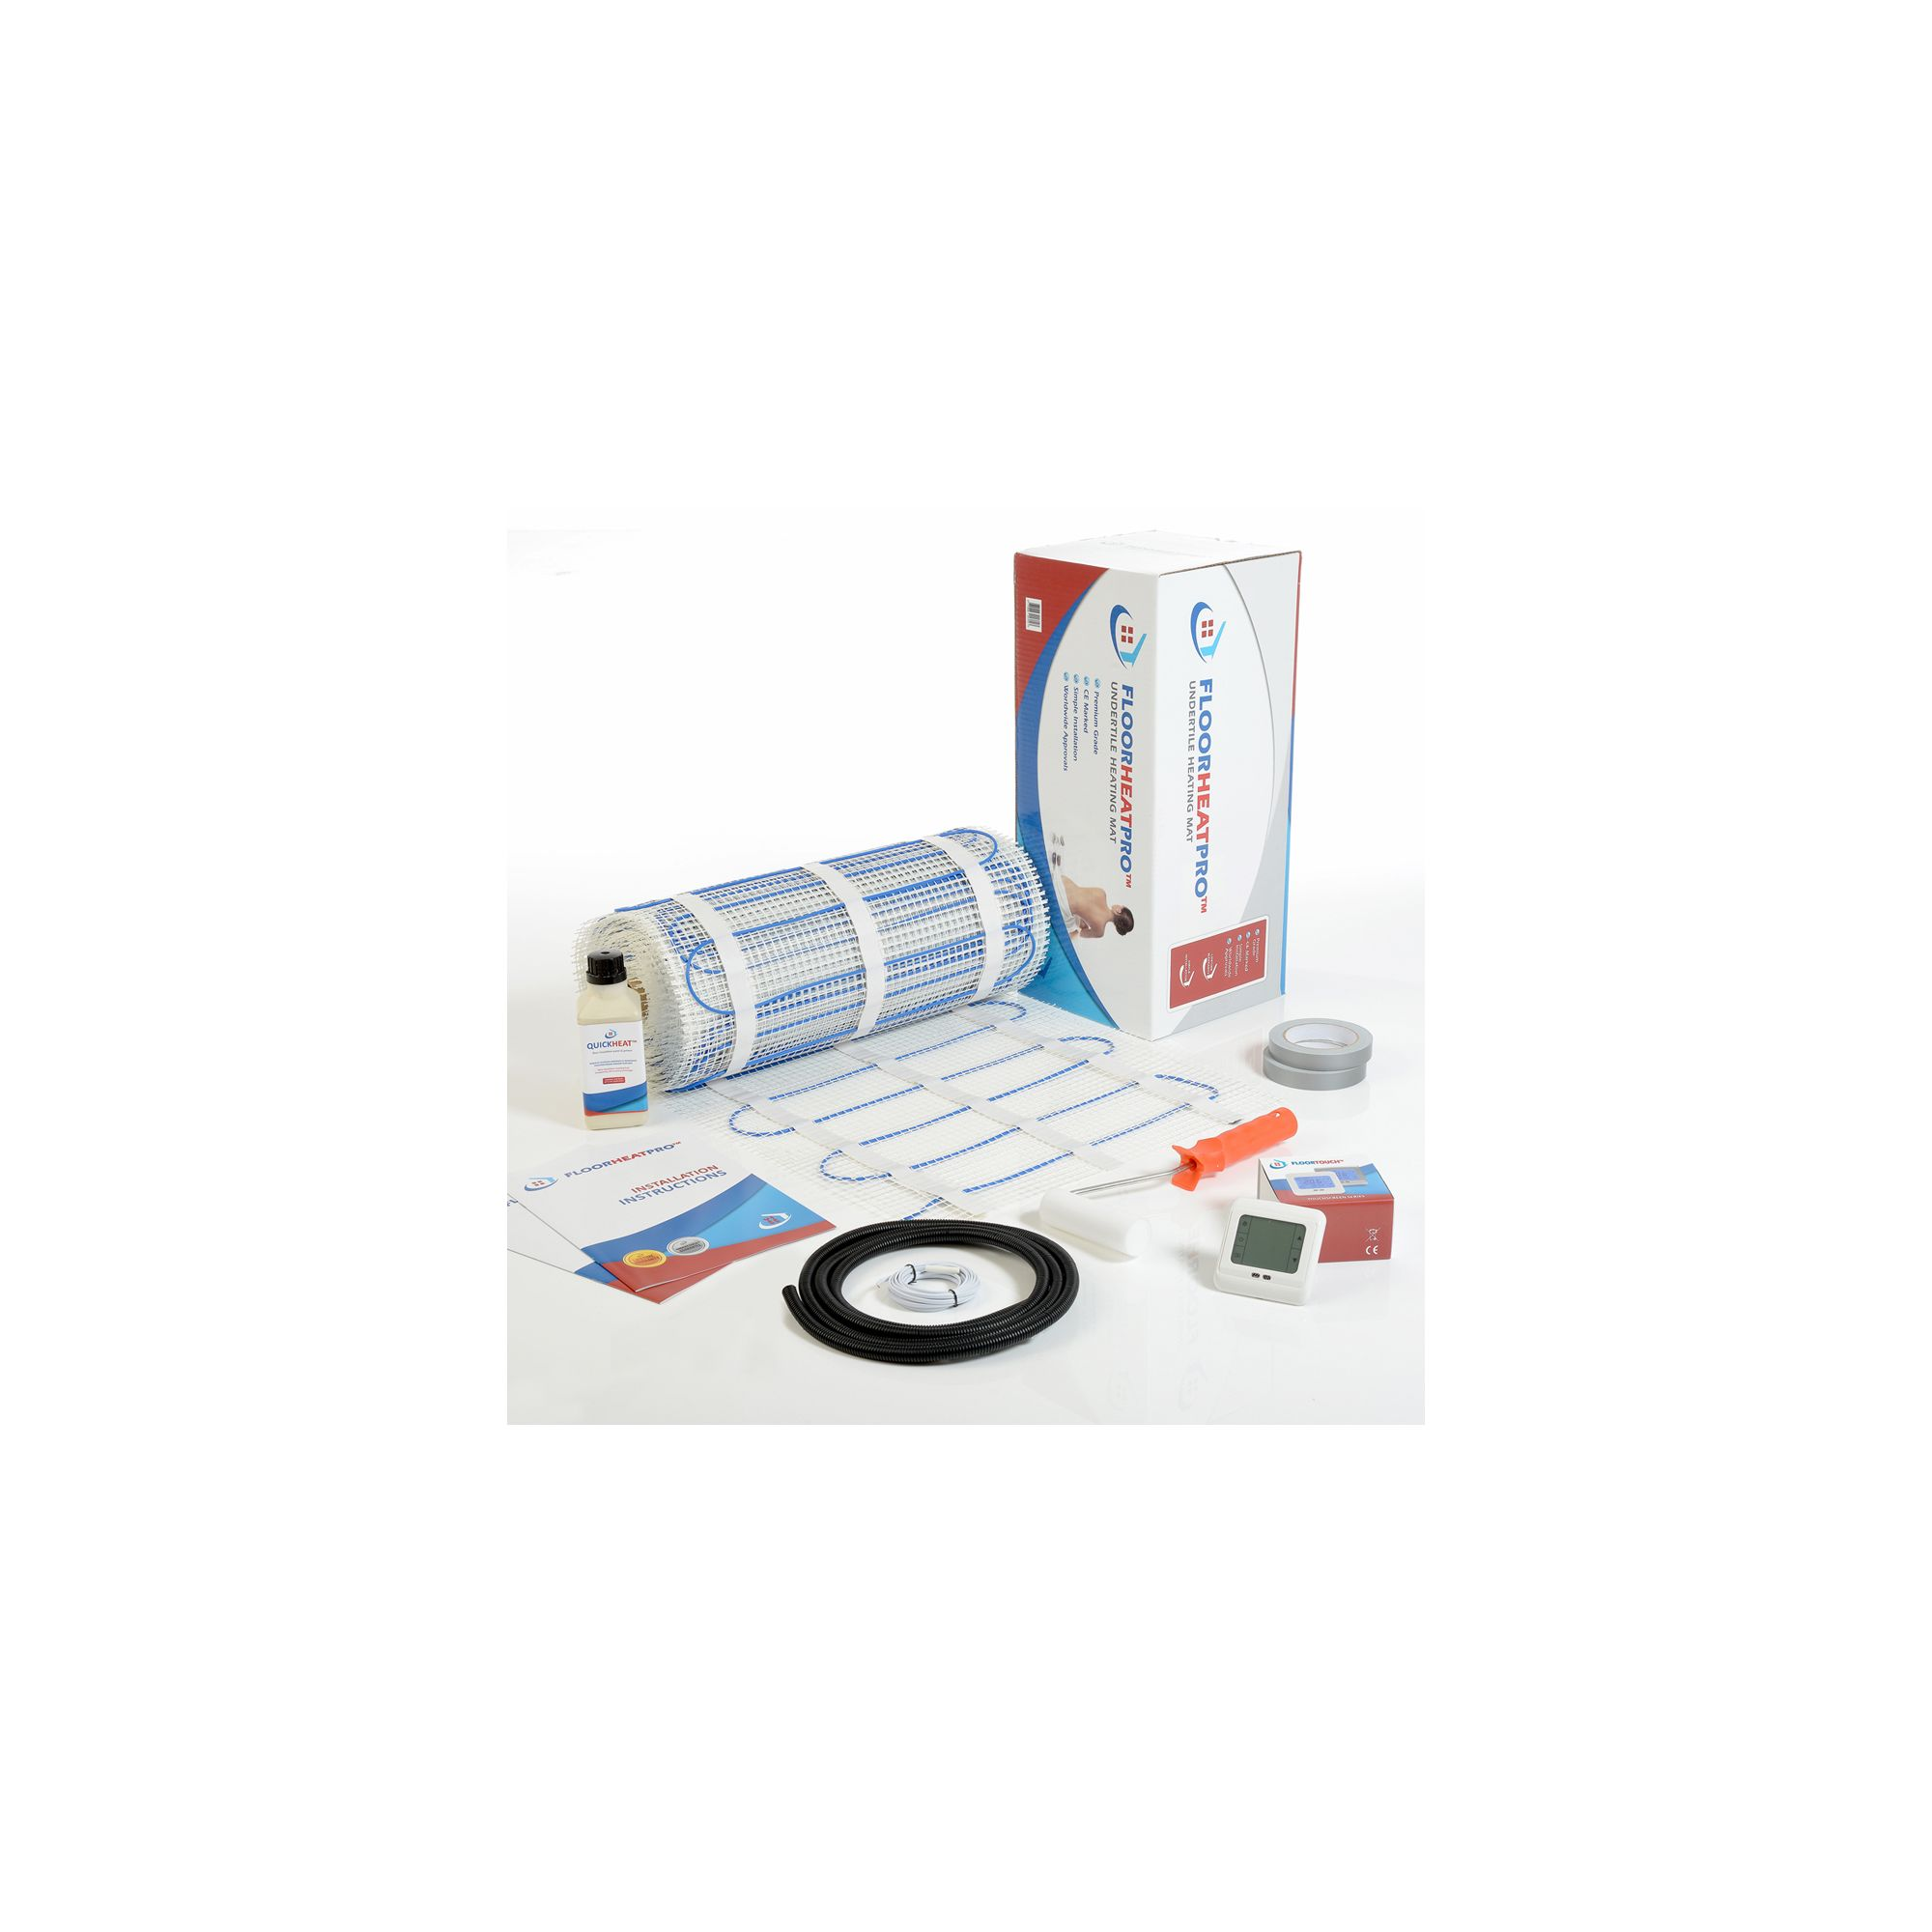 19.0m2 - Underfloor Electric Heating Kit 150w/m2 - Tiles at Tescos Direct